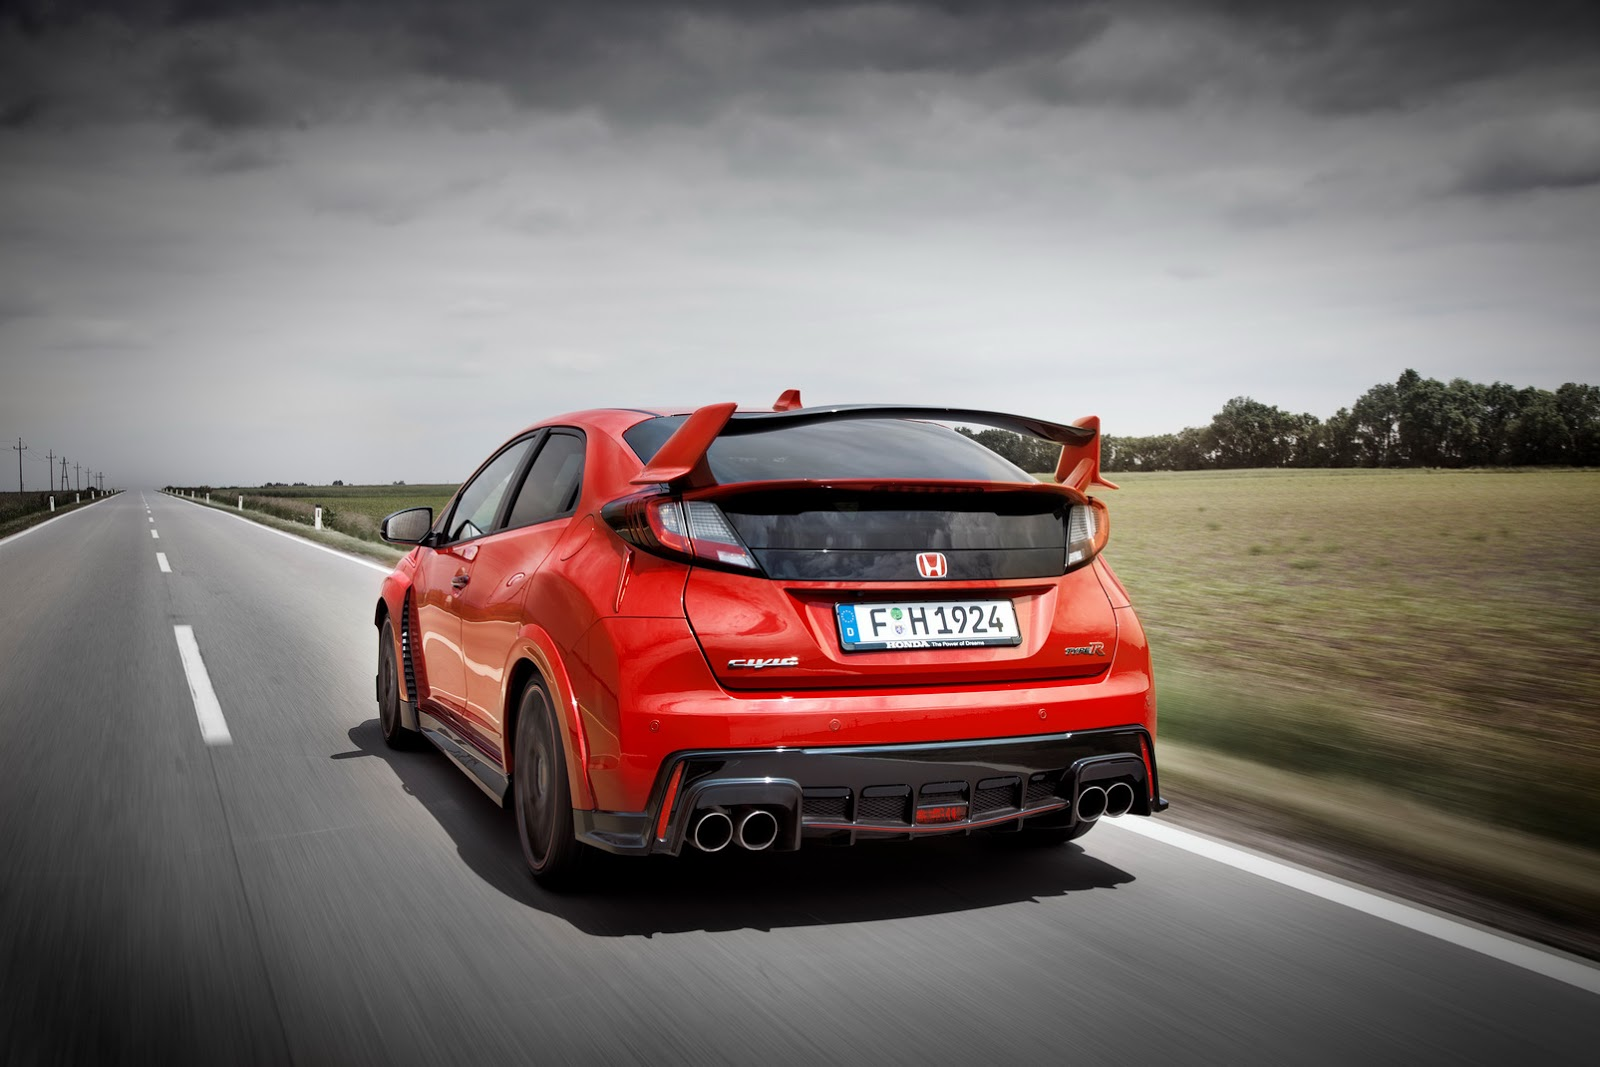 2015 honda civic type r looks devilish in first teaser photo autoevolution. Black Bedroom Furniture Sets. Home Design Ideas